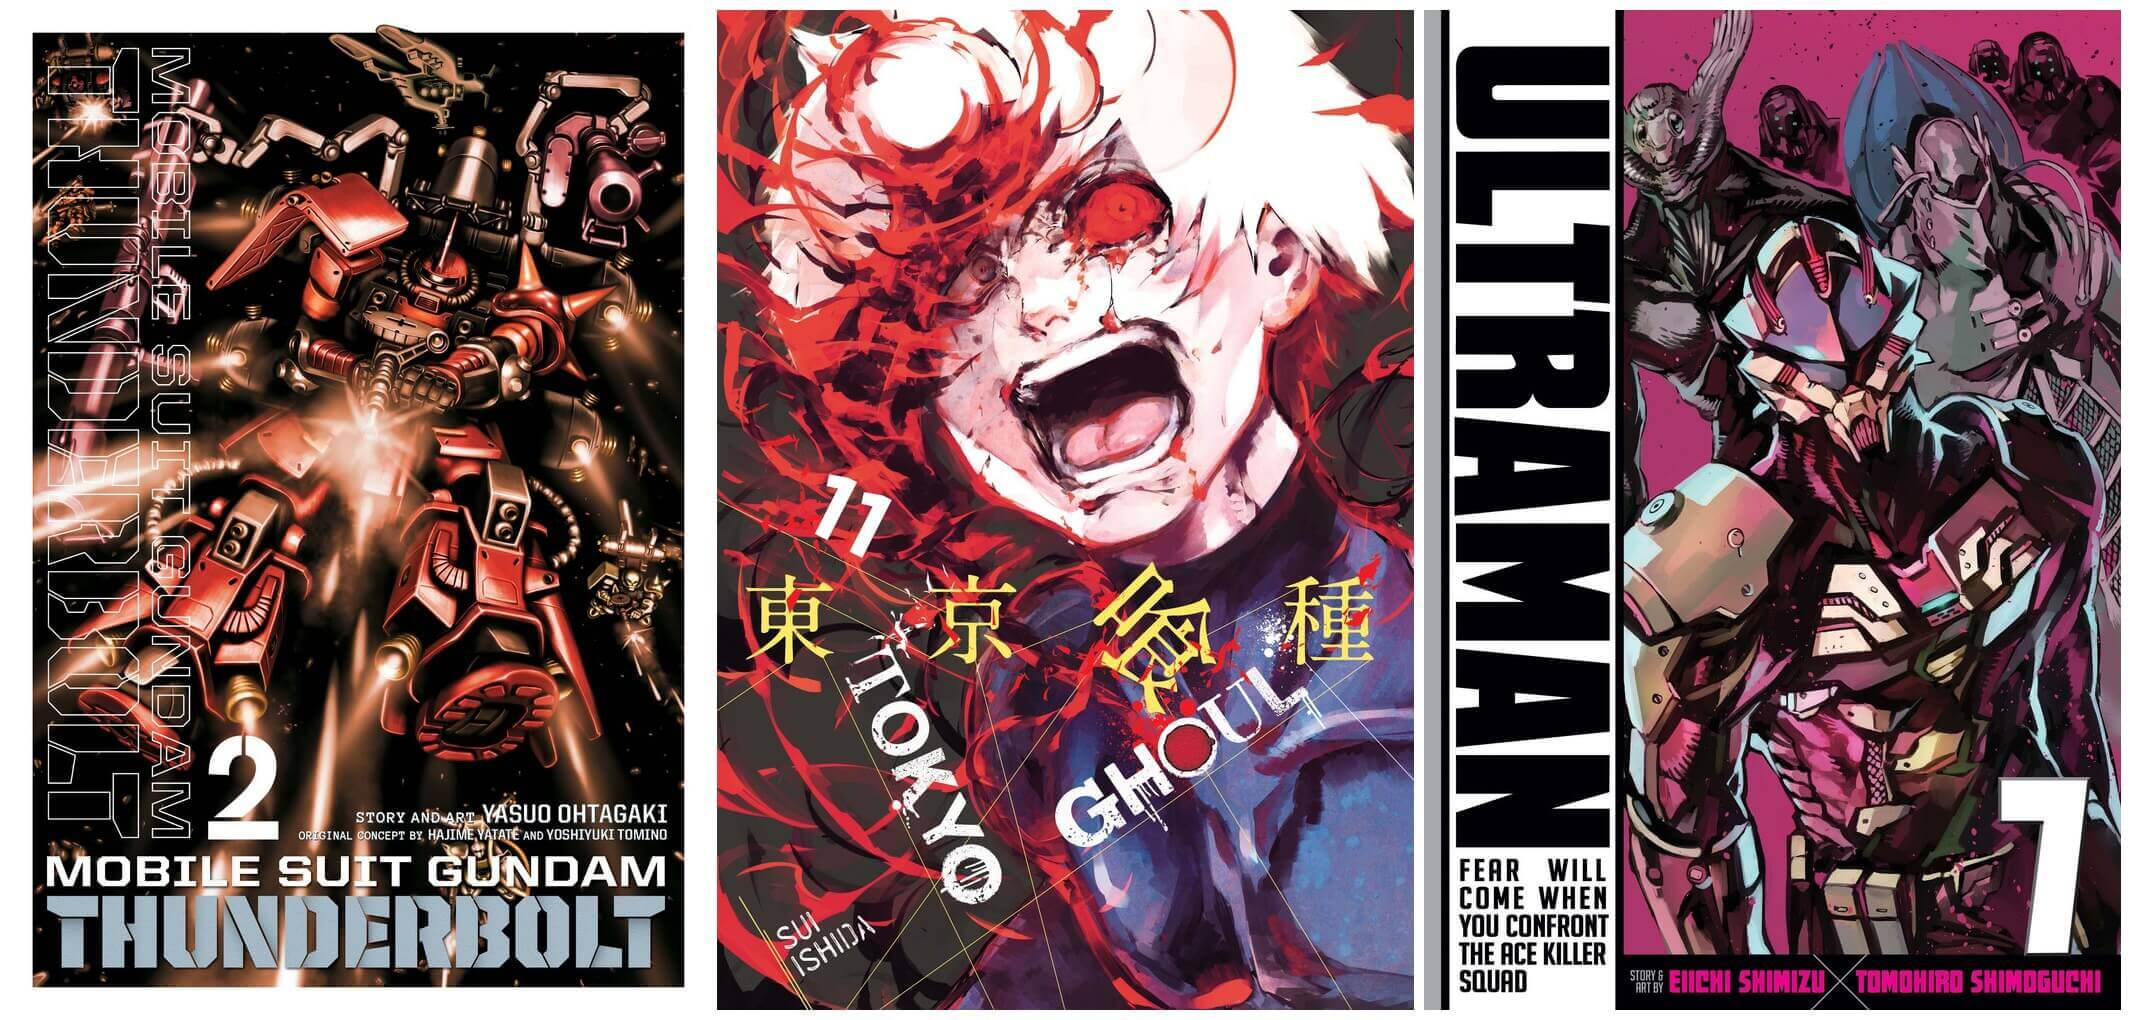 February 2017 Manga Releases Covers of Mobile Suit Gundam Thunderbolt, Tokyo Ghoul, and Ultraman.